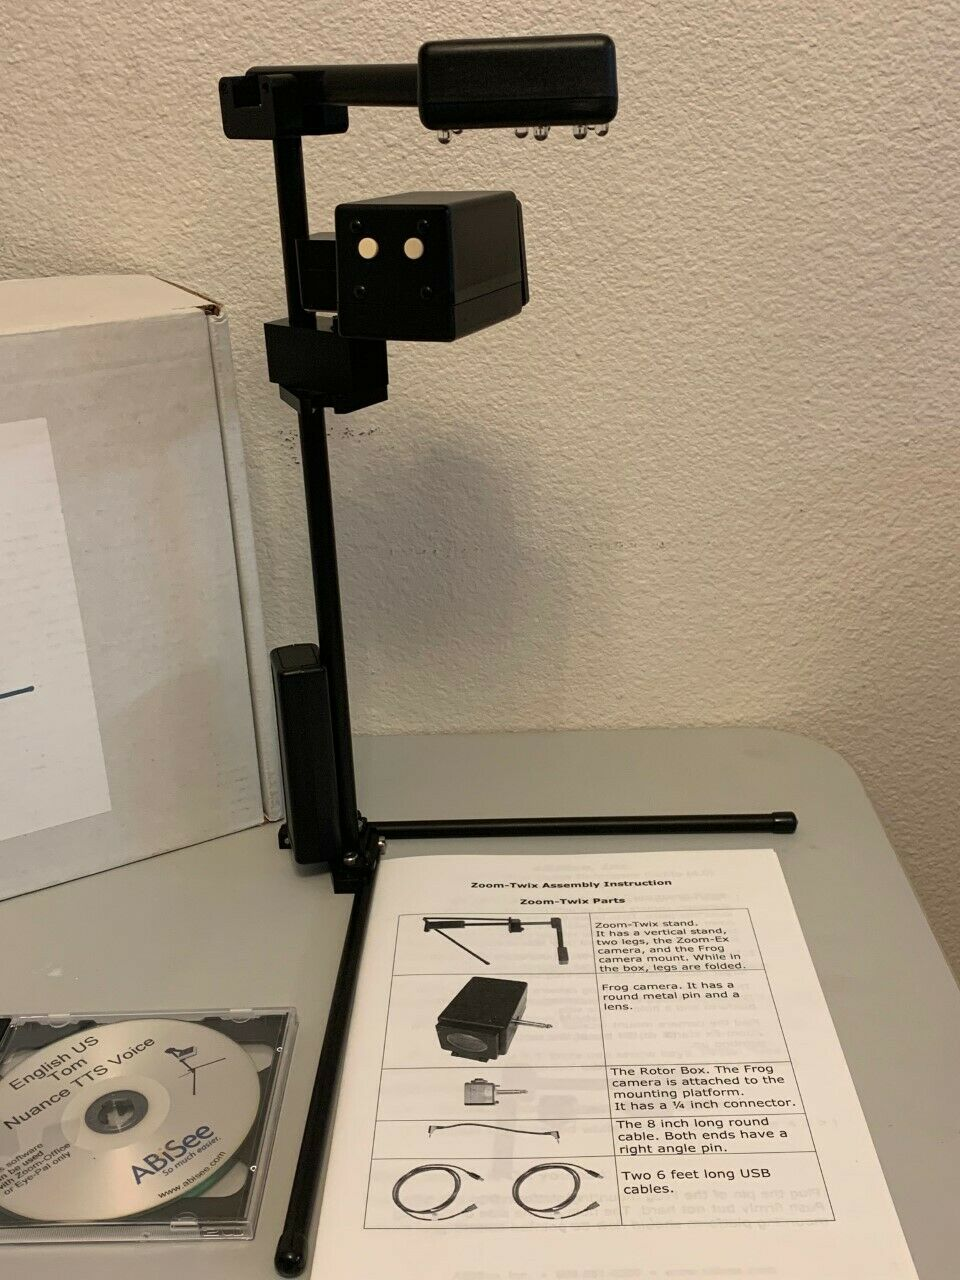 ABisee Zoom Twix Low Vision Distance Magnifier & OCR Reader Freedom Scientific